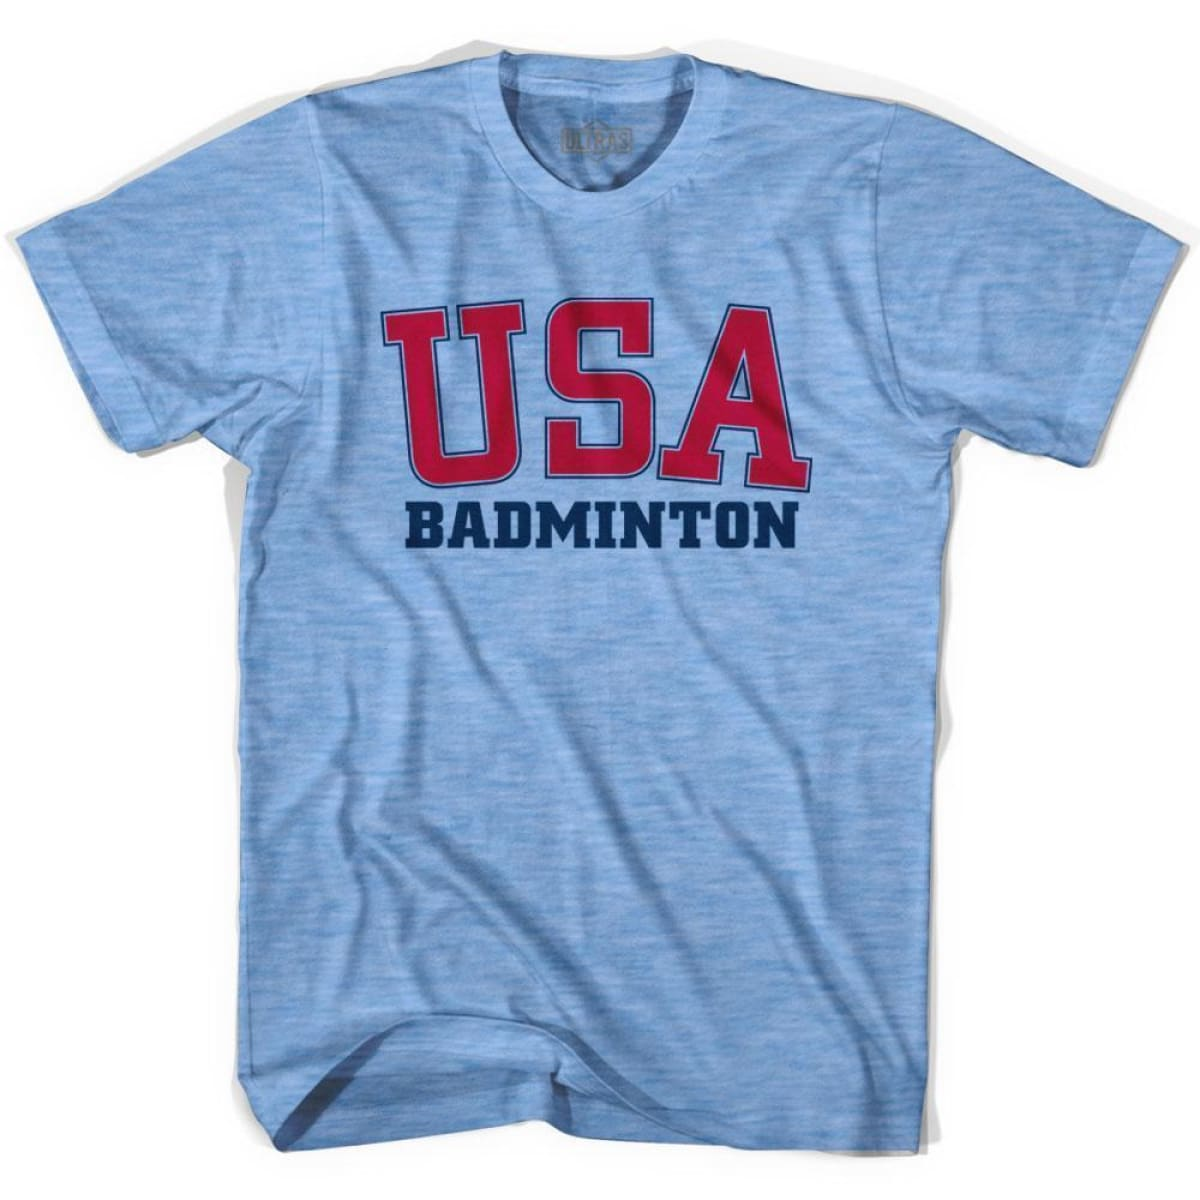 USA Badminton Ultras T-shirt - Athletic Blue / Adult Small - Ultras Country T-shirts